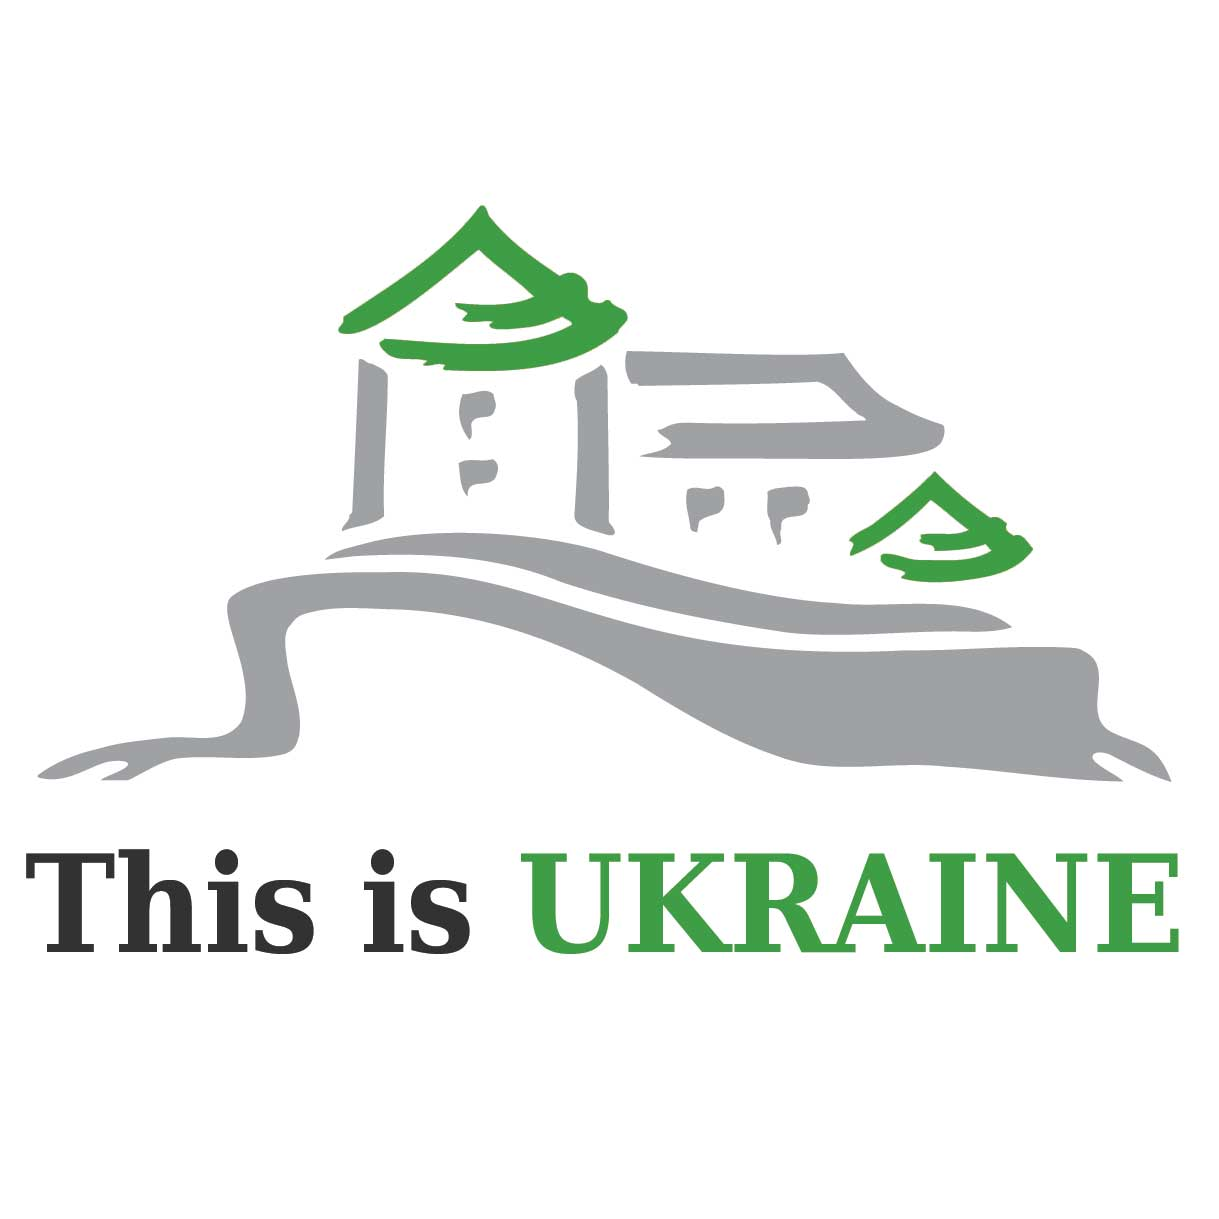 This is Ukraine